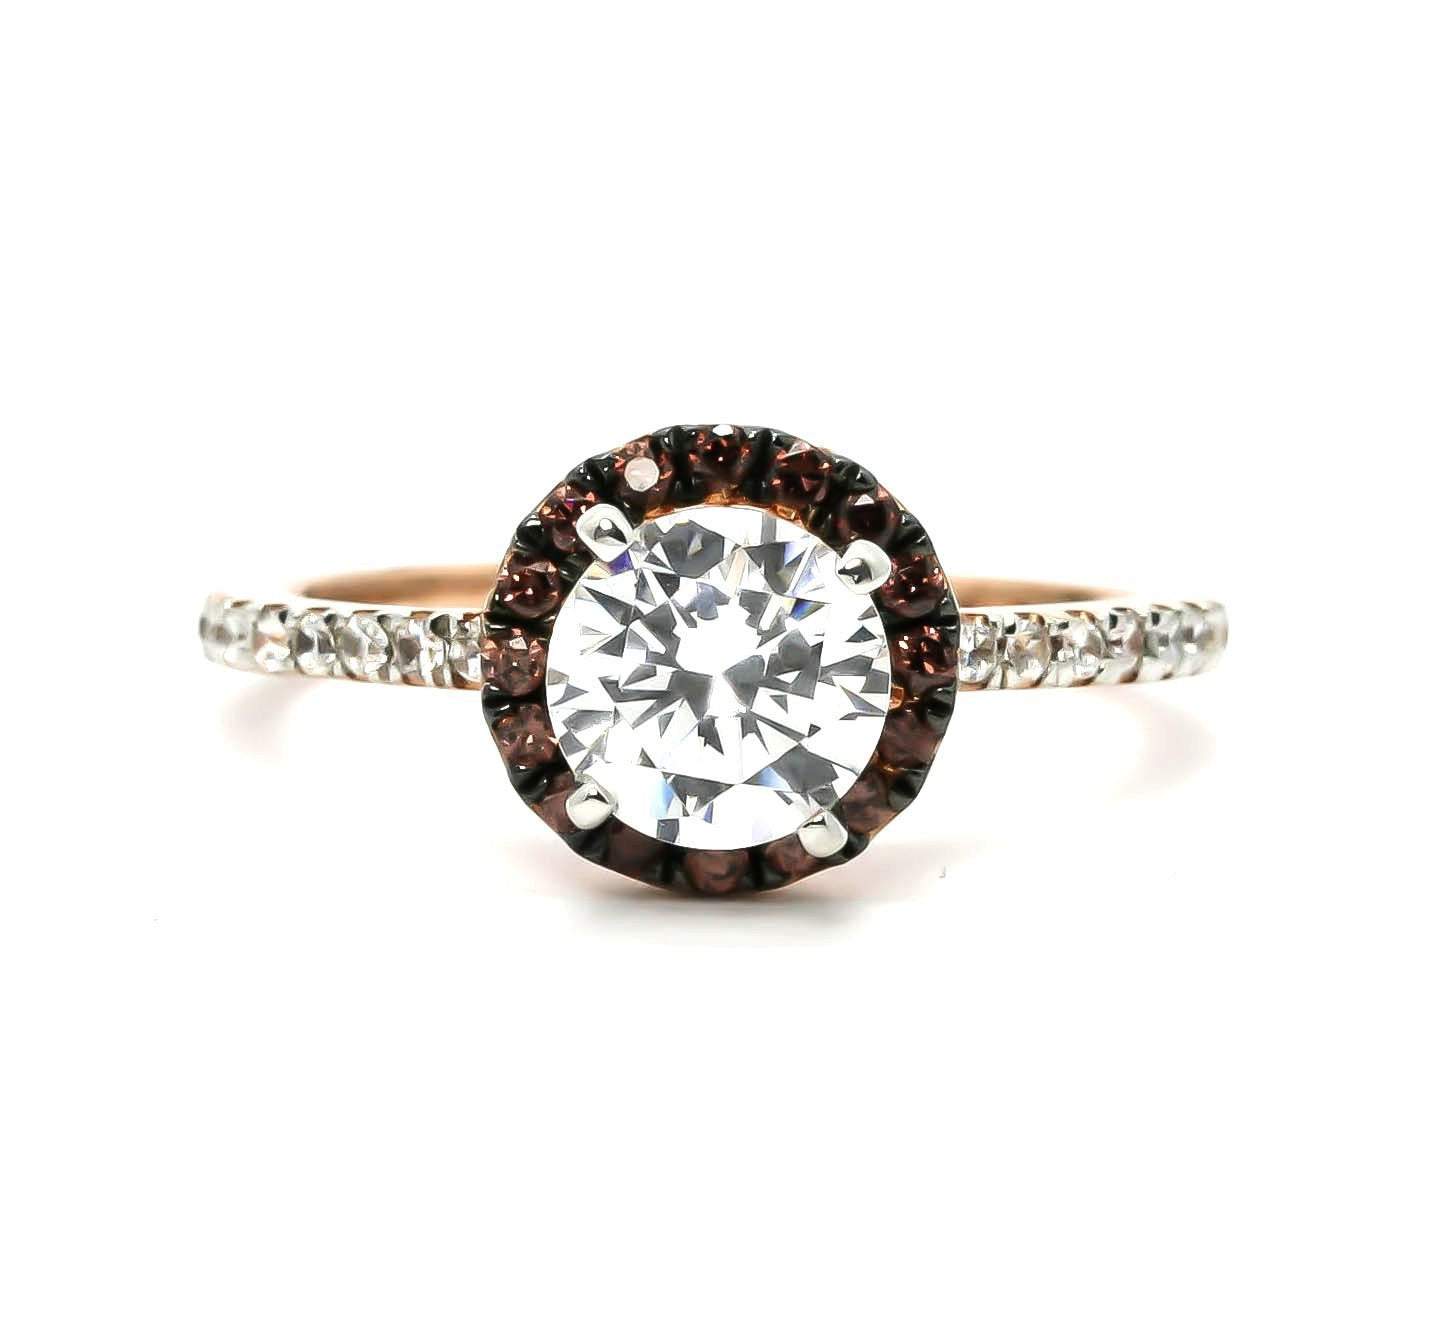 Fancy Brown Diamond Halo, White Diamond Accent Stones, Rose Gold, Semi Mount For 1 Carat Stone Engagement Ring, Anniversary Ring - 94639